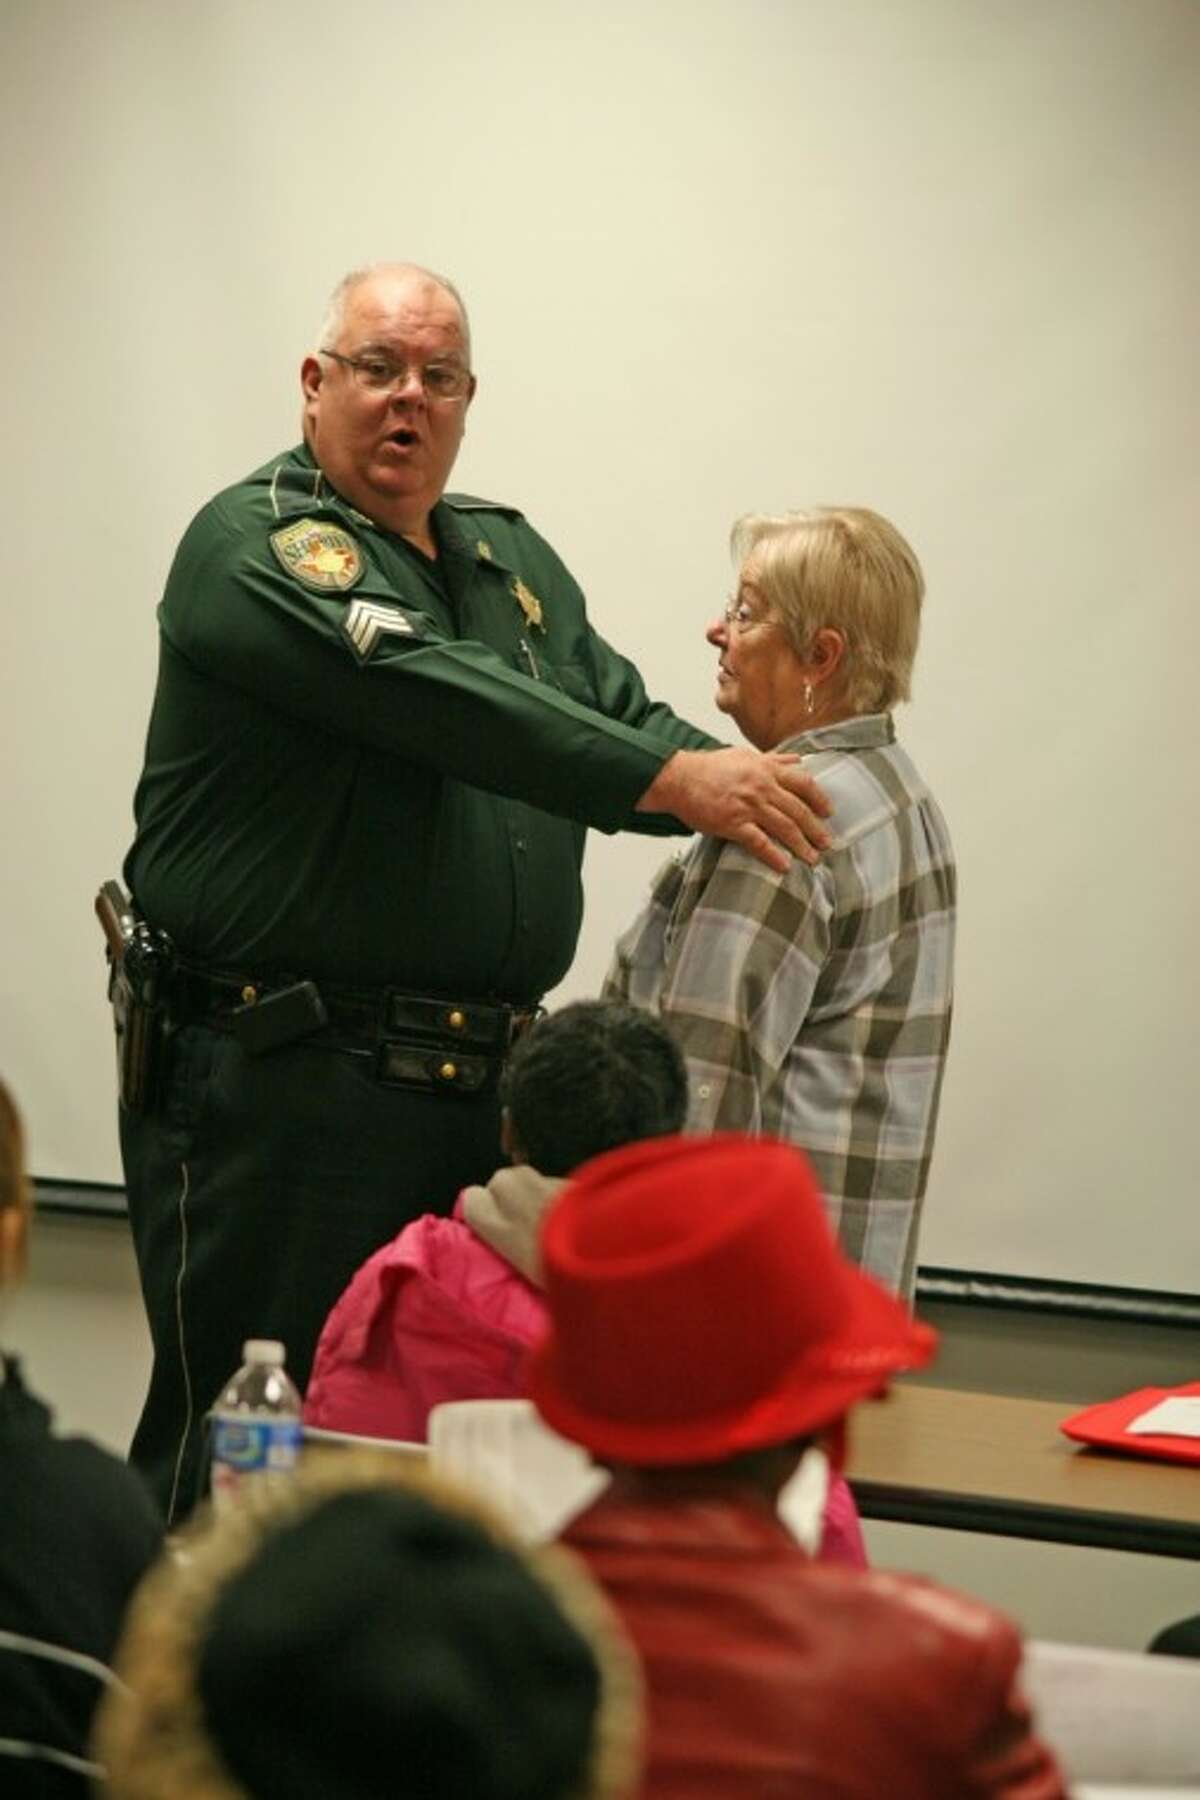 Galveston County Sheriff's Deputy Jimmie Gillane, left, taught a self-defense seminar during the Winter 55+ Health and Wellness Expo on Friday morning at COM Gymnasium. Margaret Dale of Bayou Vista, right, was one of the volunteers during the seminar.